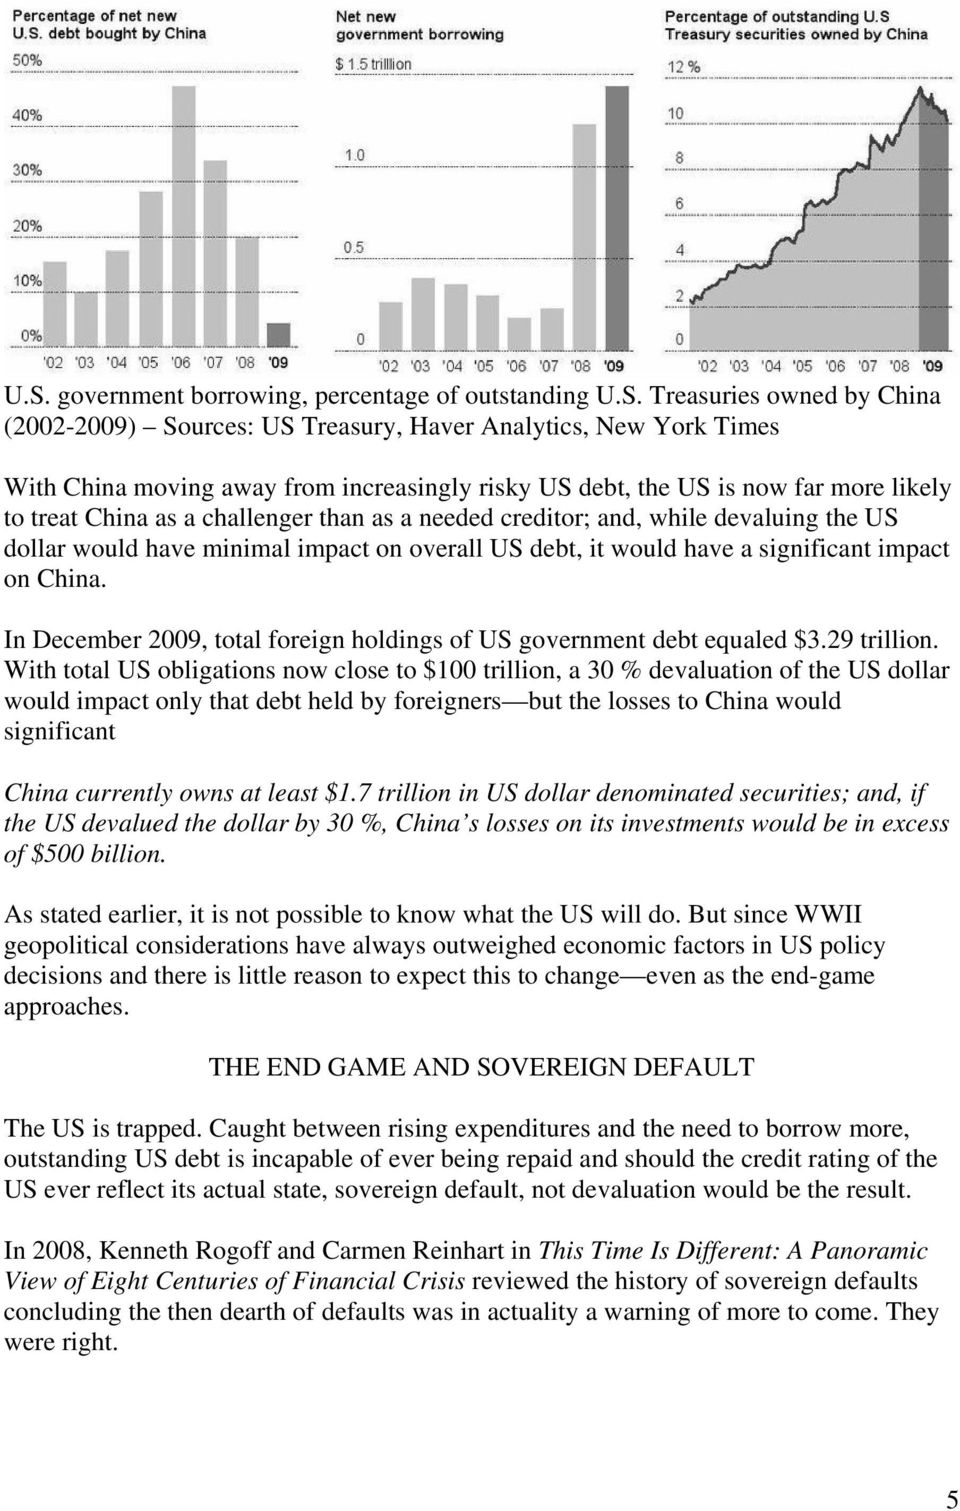 significant impact on China. In December 2009, total foreign holdings of US government debt equaled $3.29 trillion.